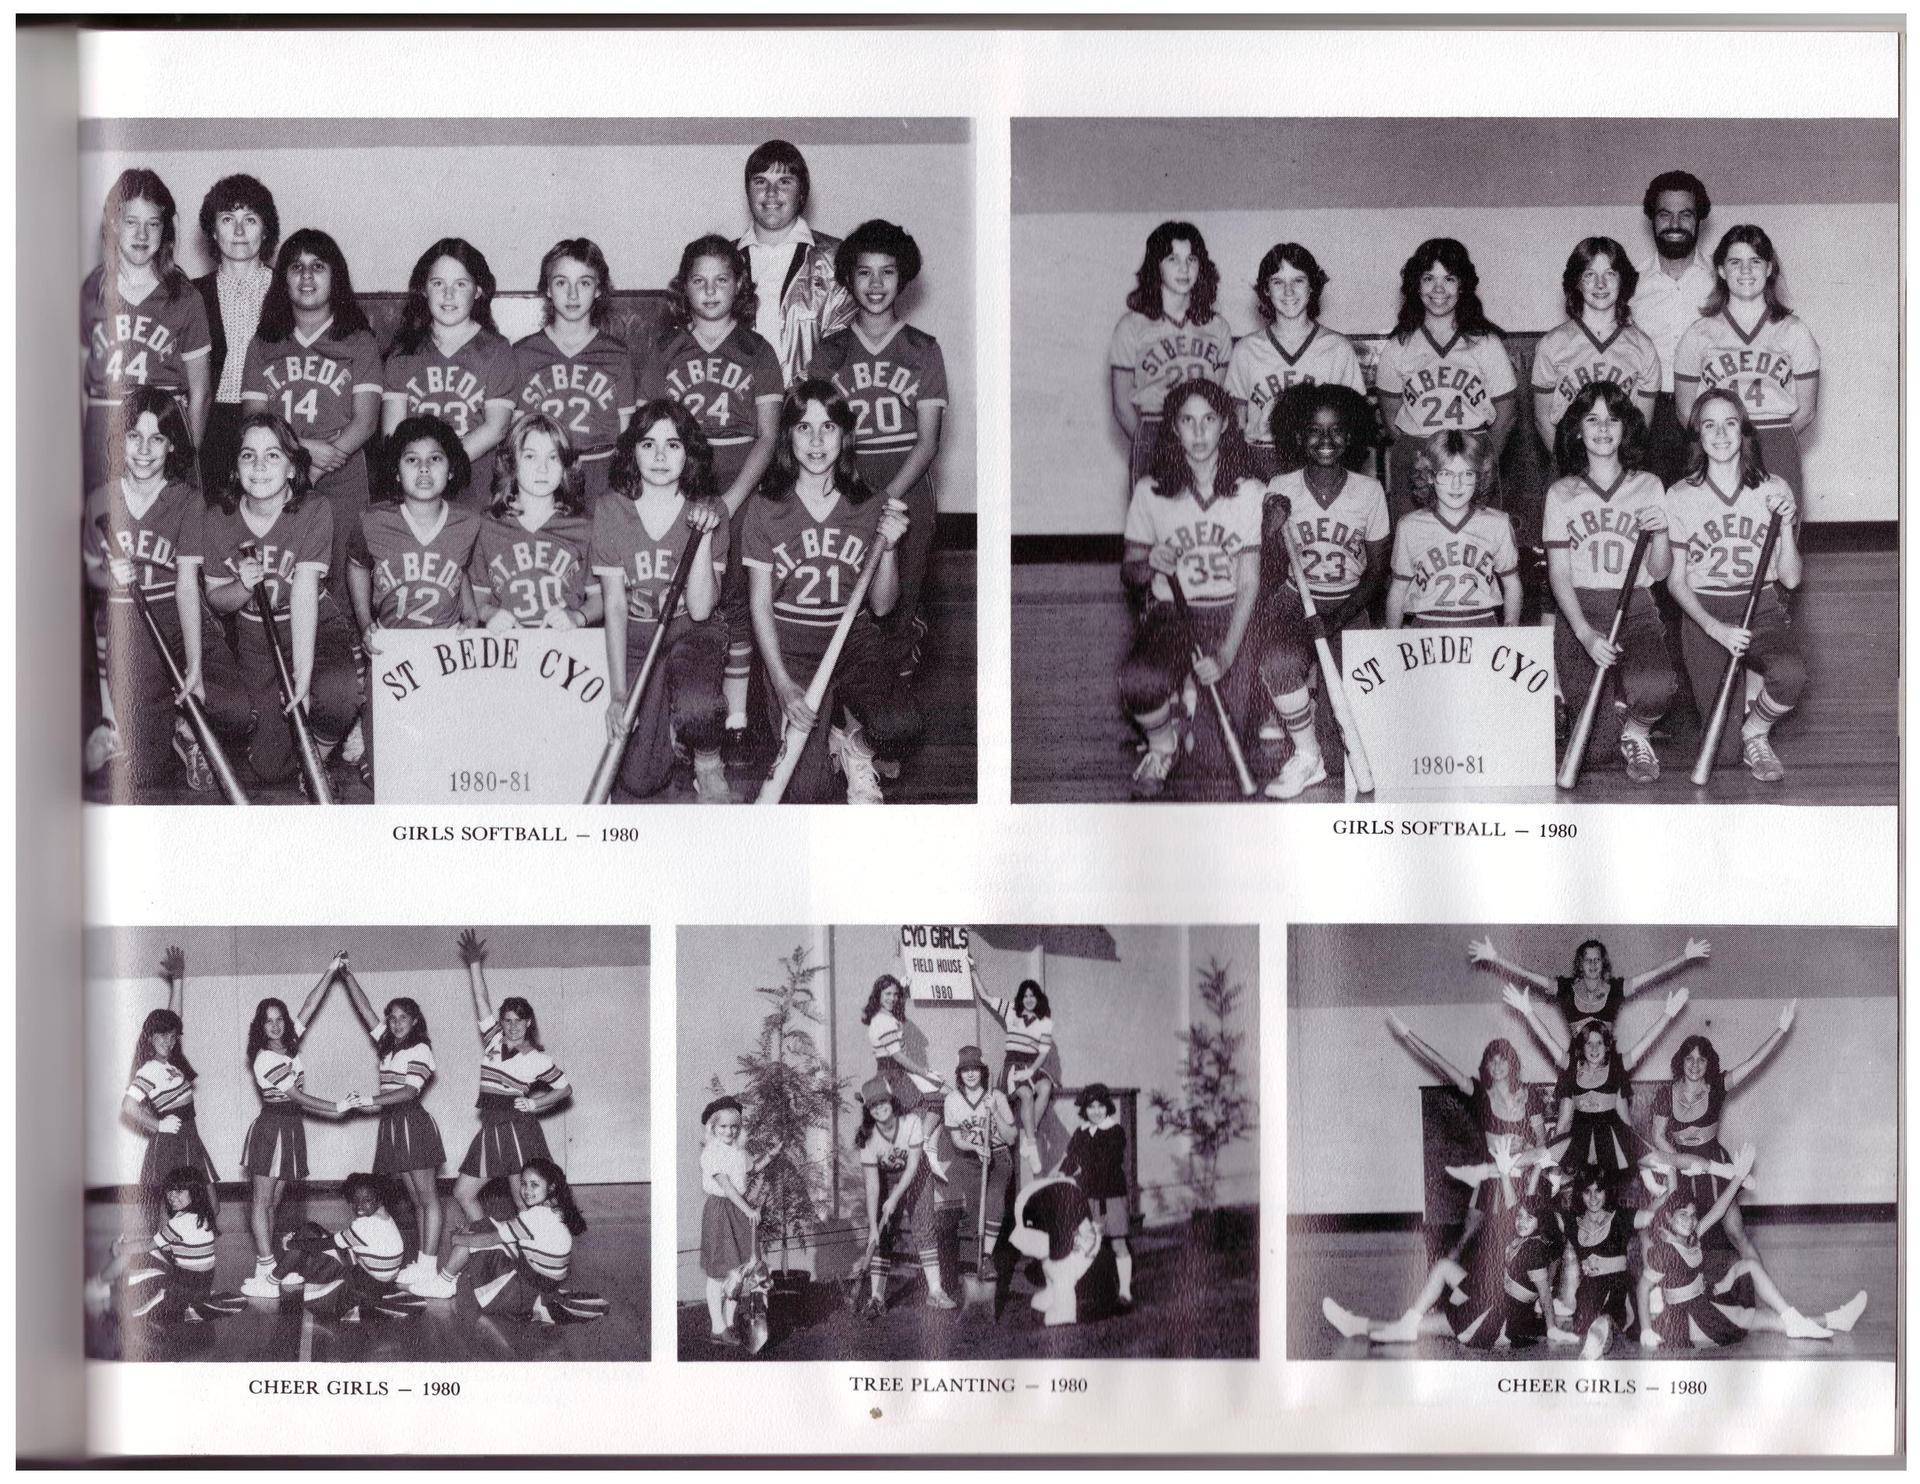 Our girls athletic teams in 1980.